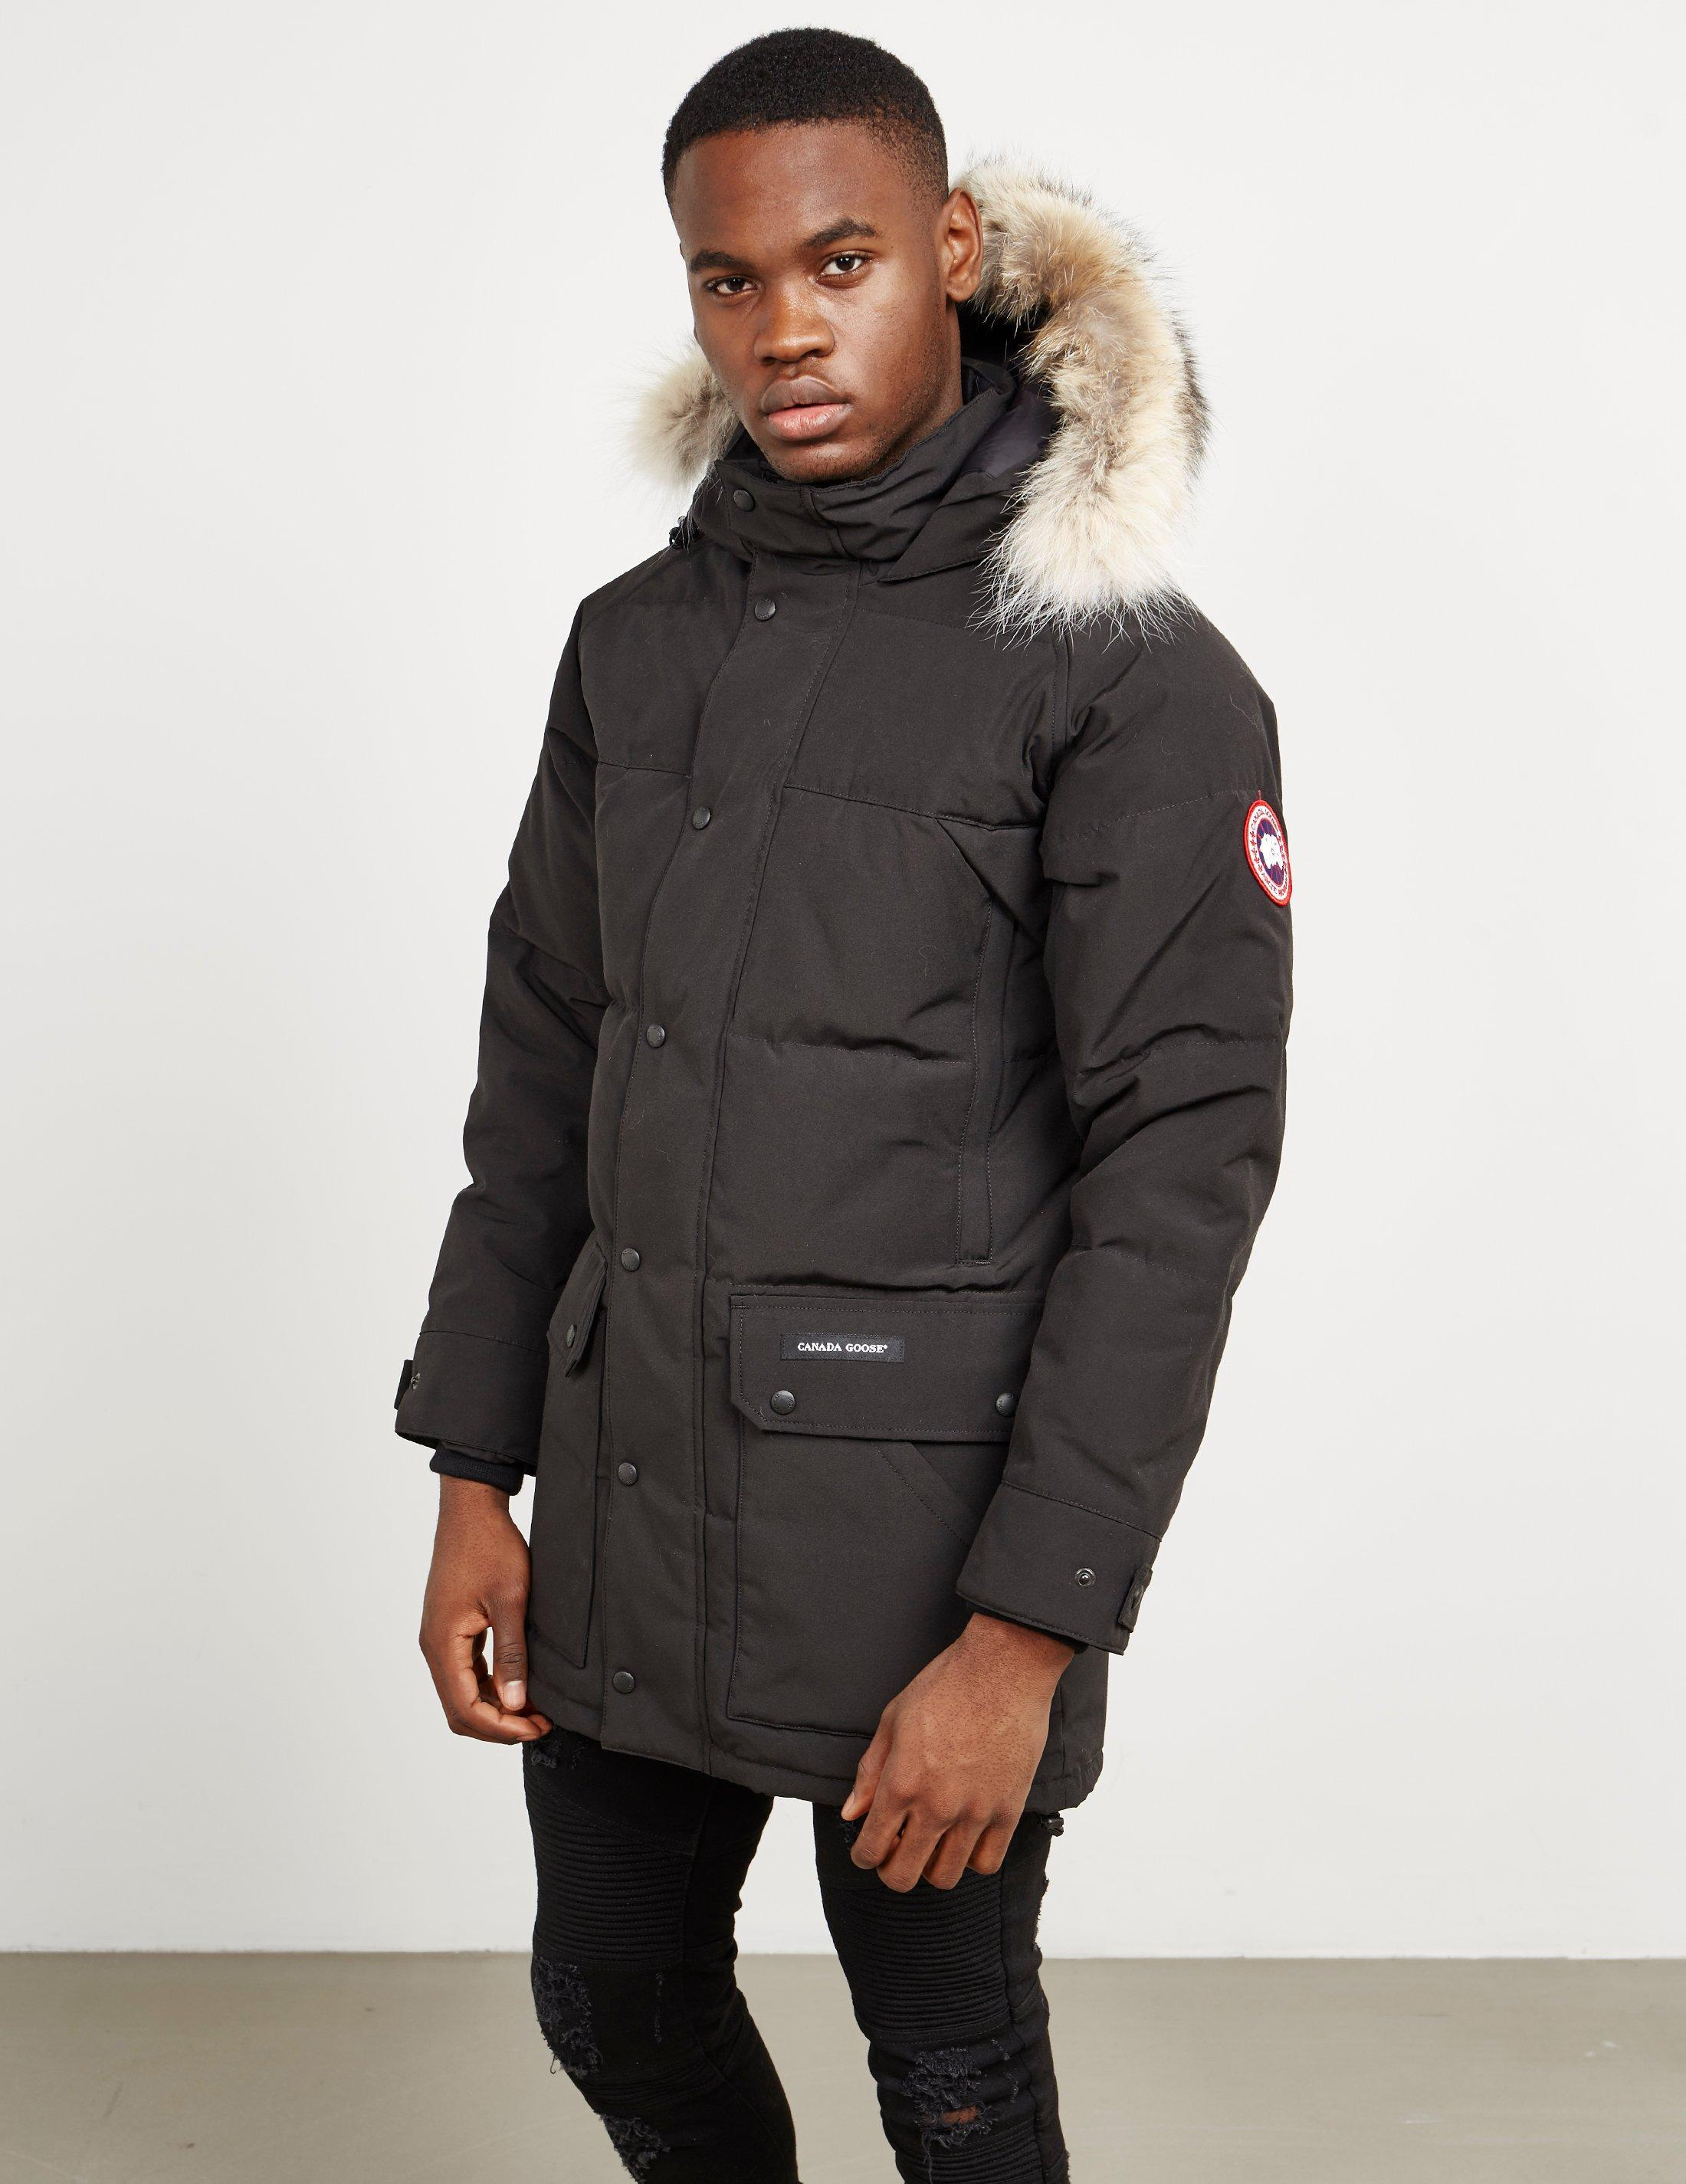 6798e2a355998 Canada Goose Mens Emory Padded Jacket Black in Black for Men - Lyst